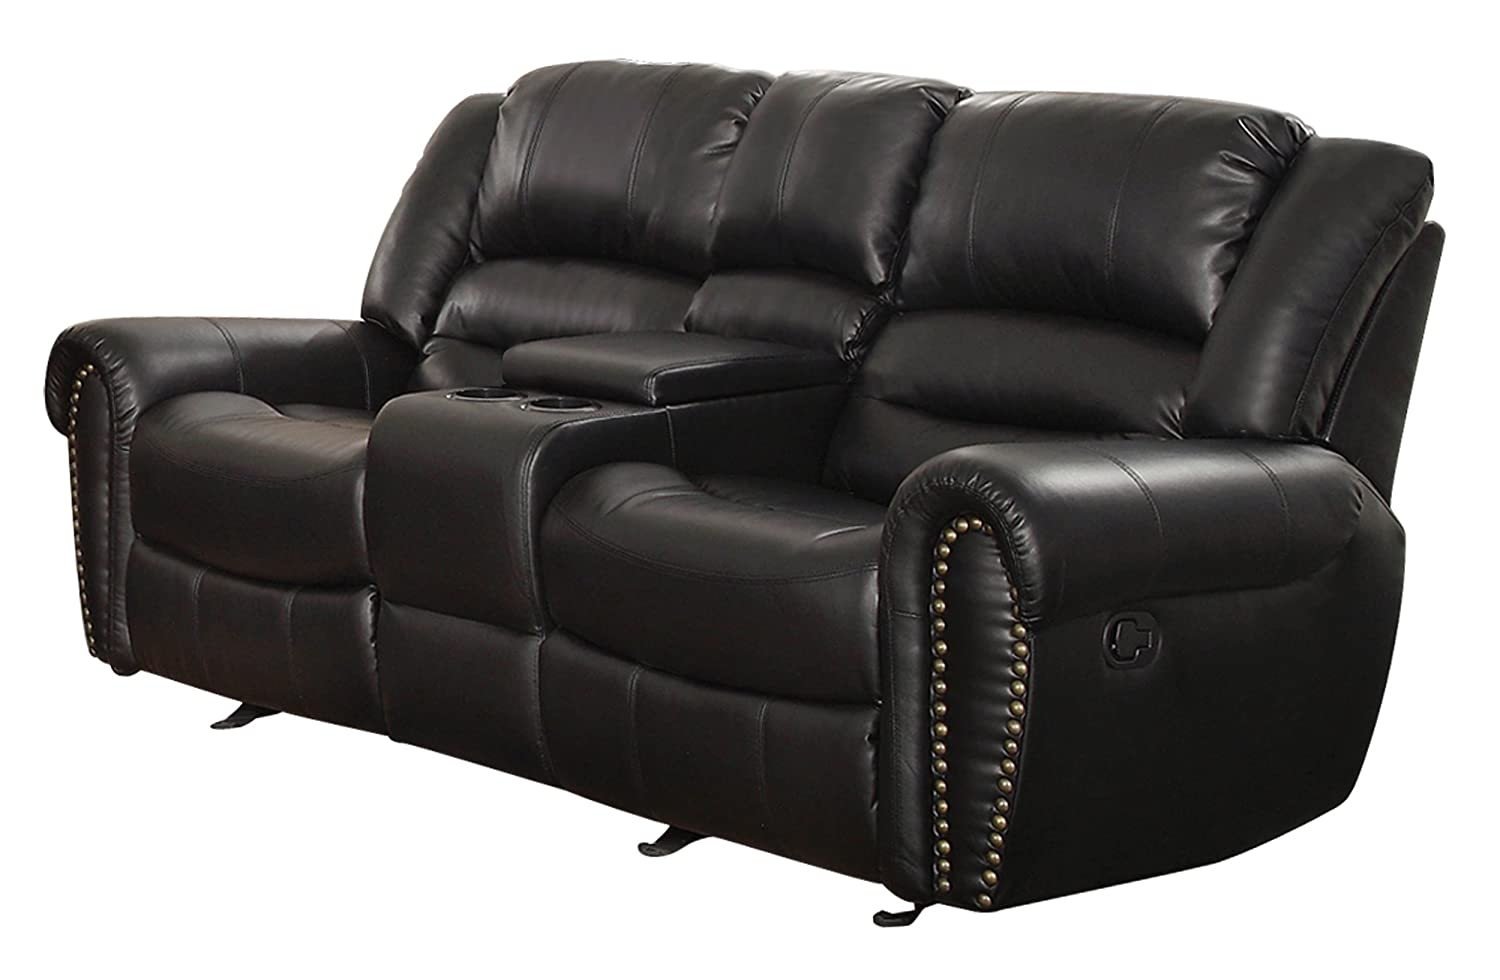 Best Recliner Reviews and Buying Guide 3